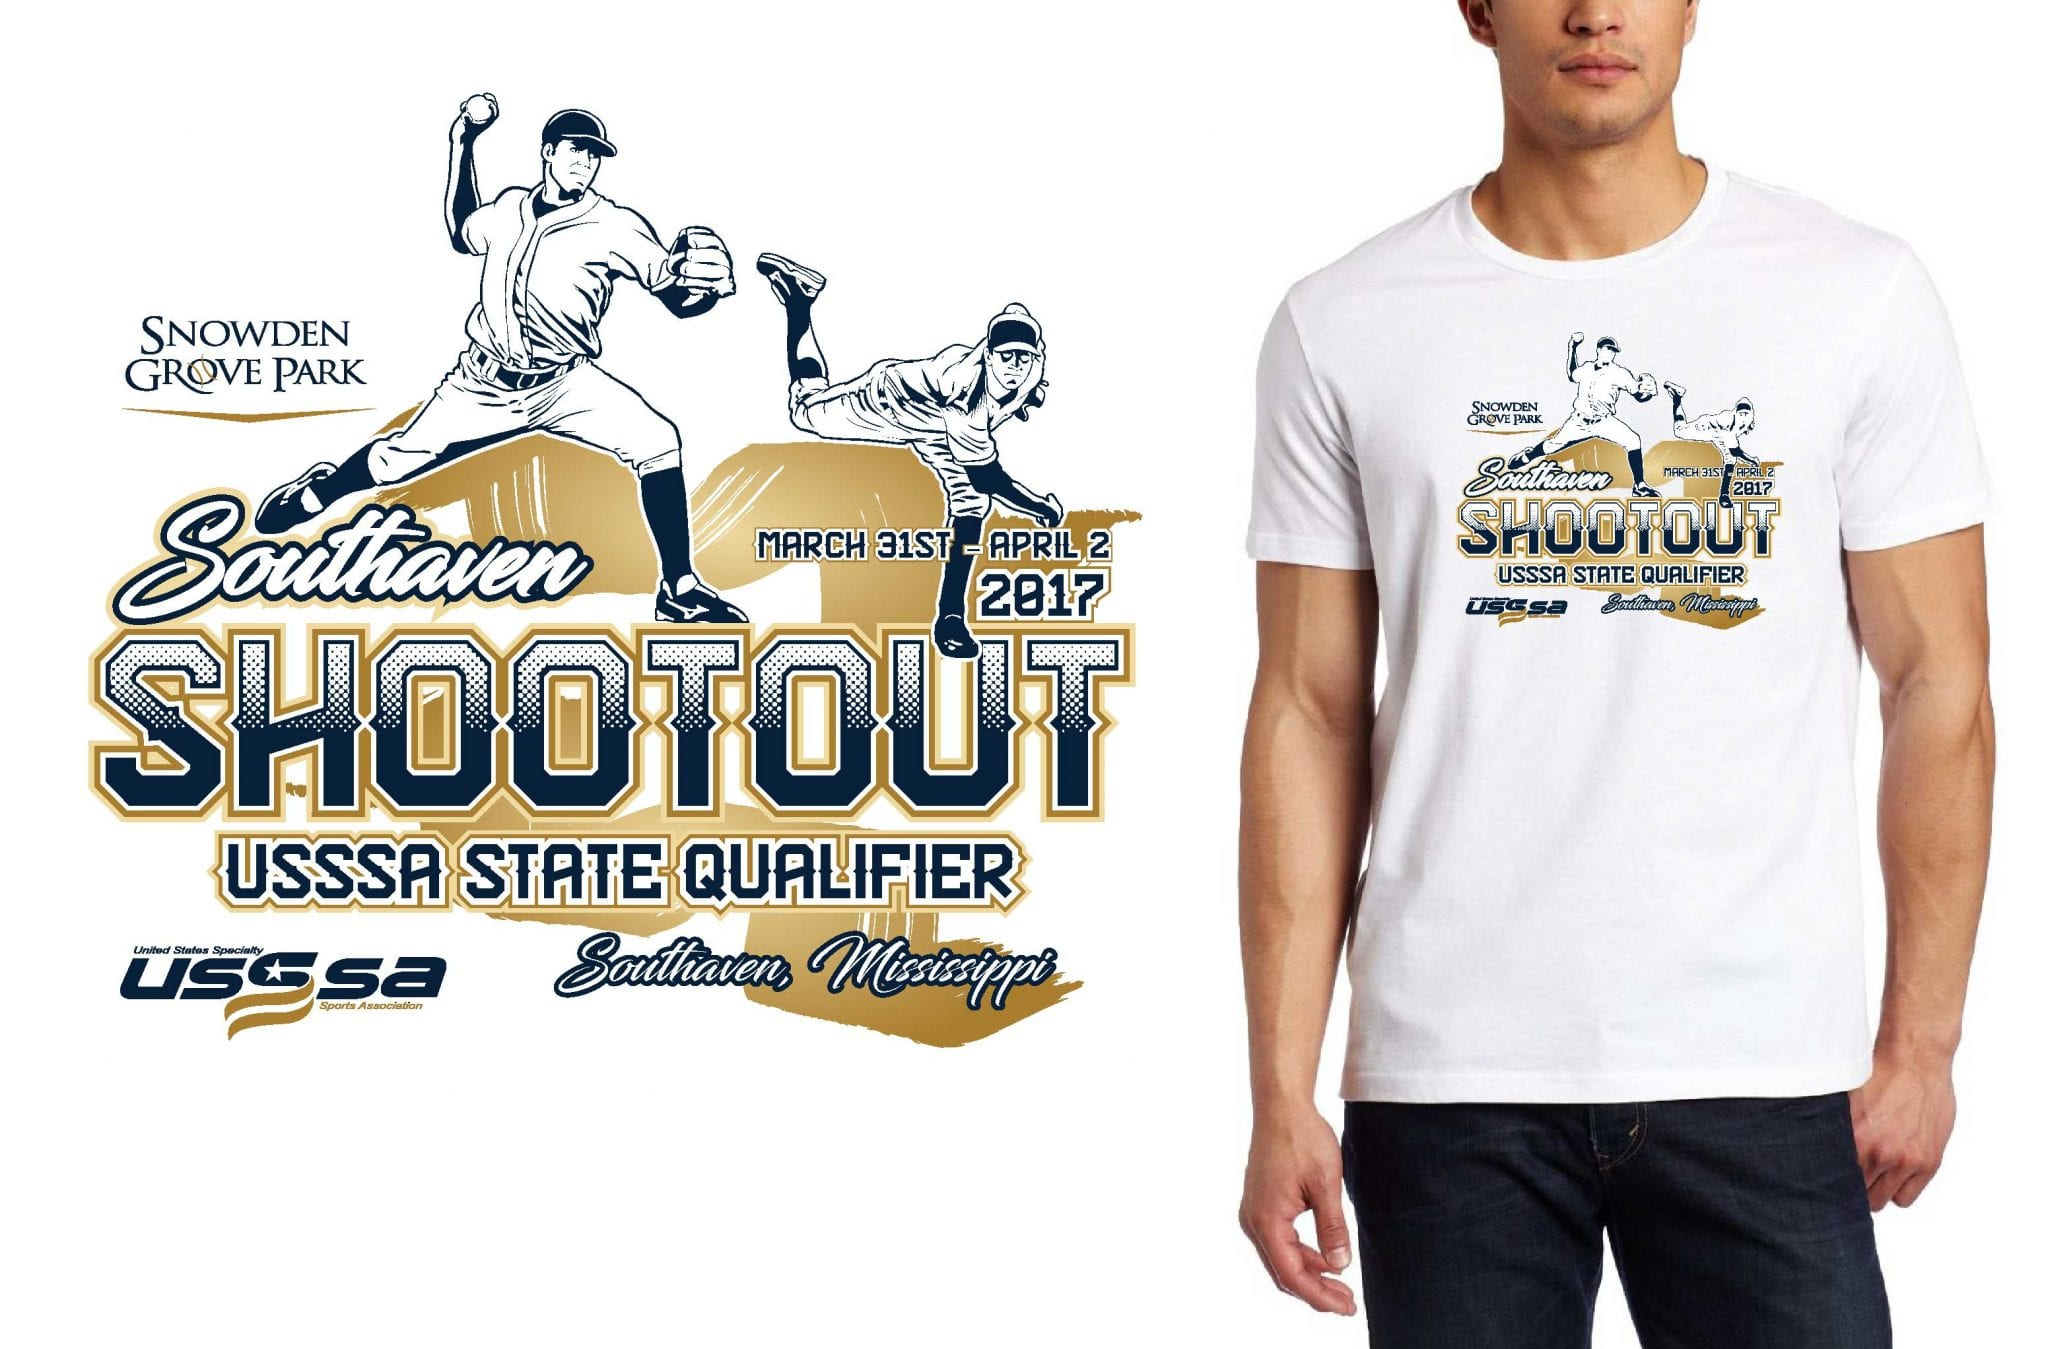 BASEBALL LOGO for Southaven-Shootout T-SHIRT UrArtStudio